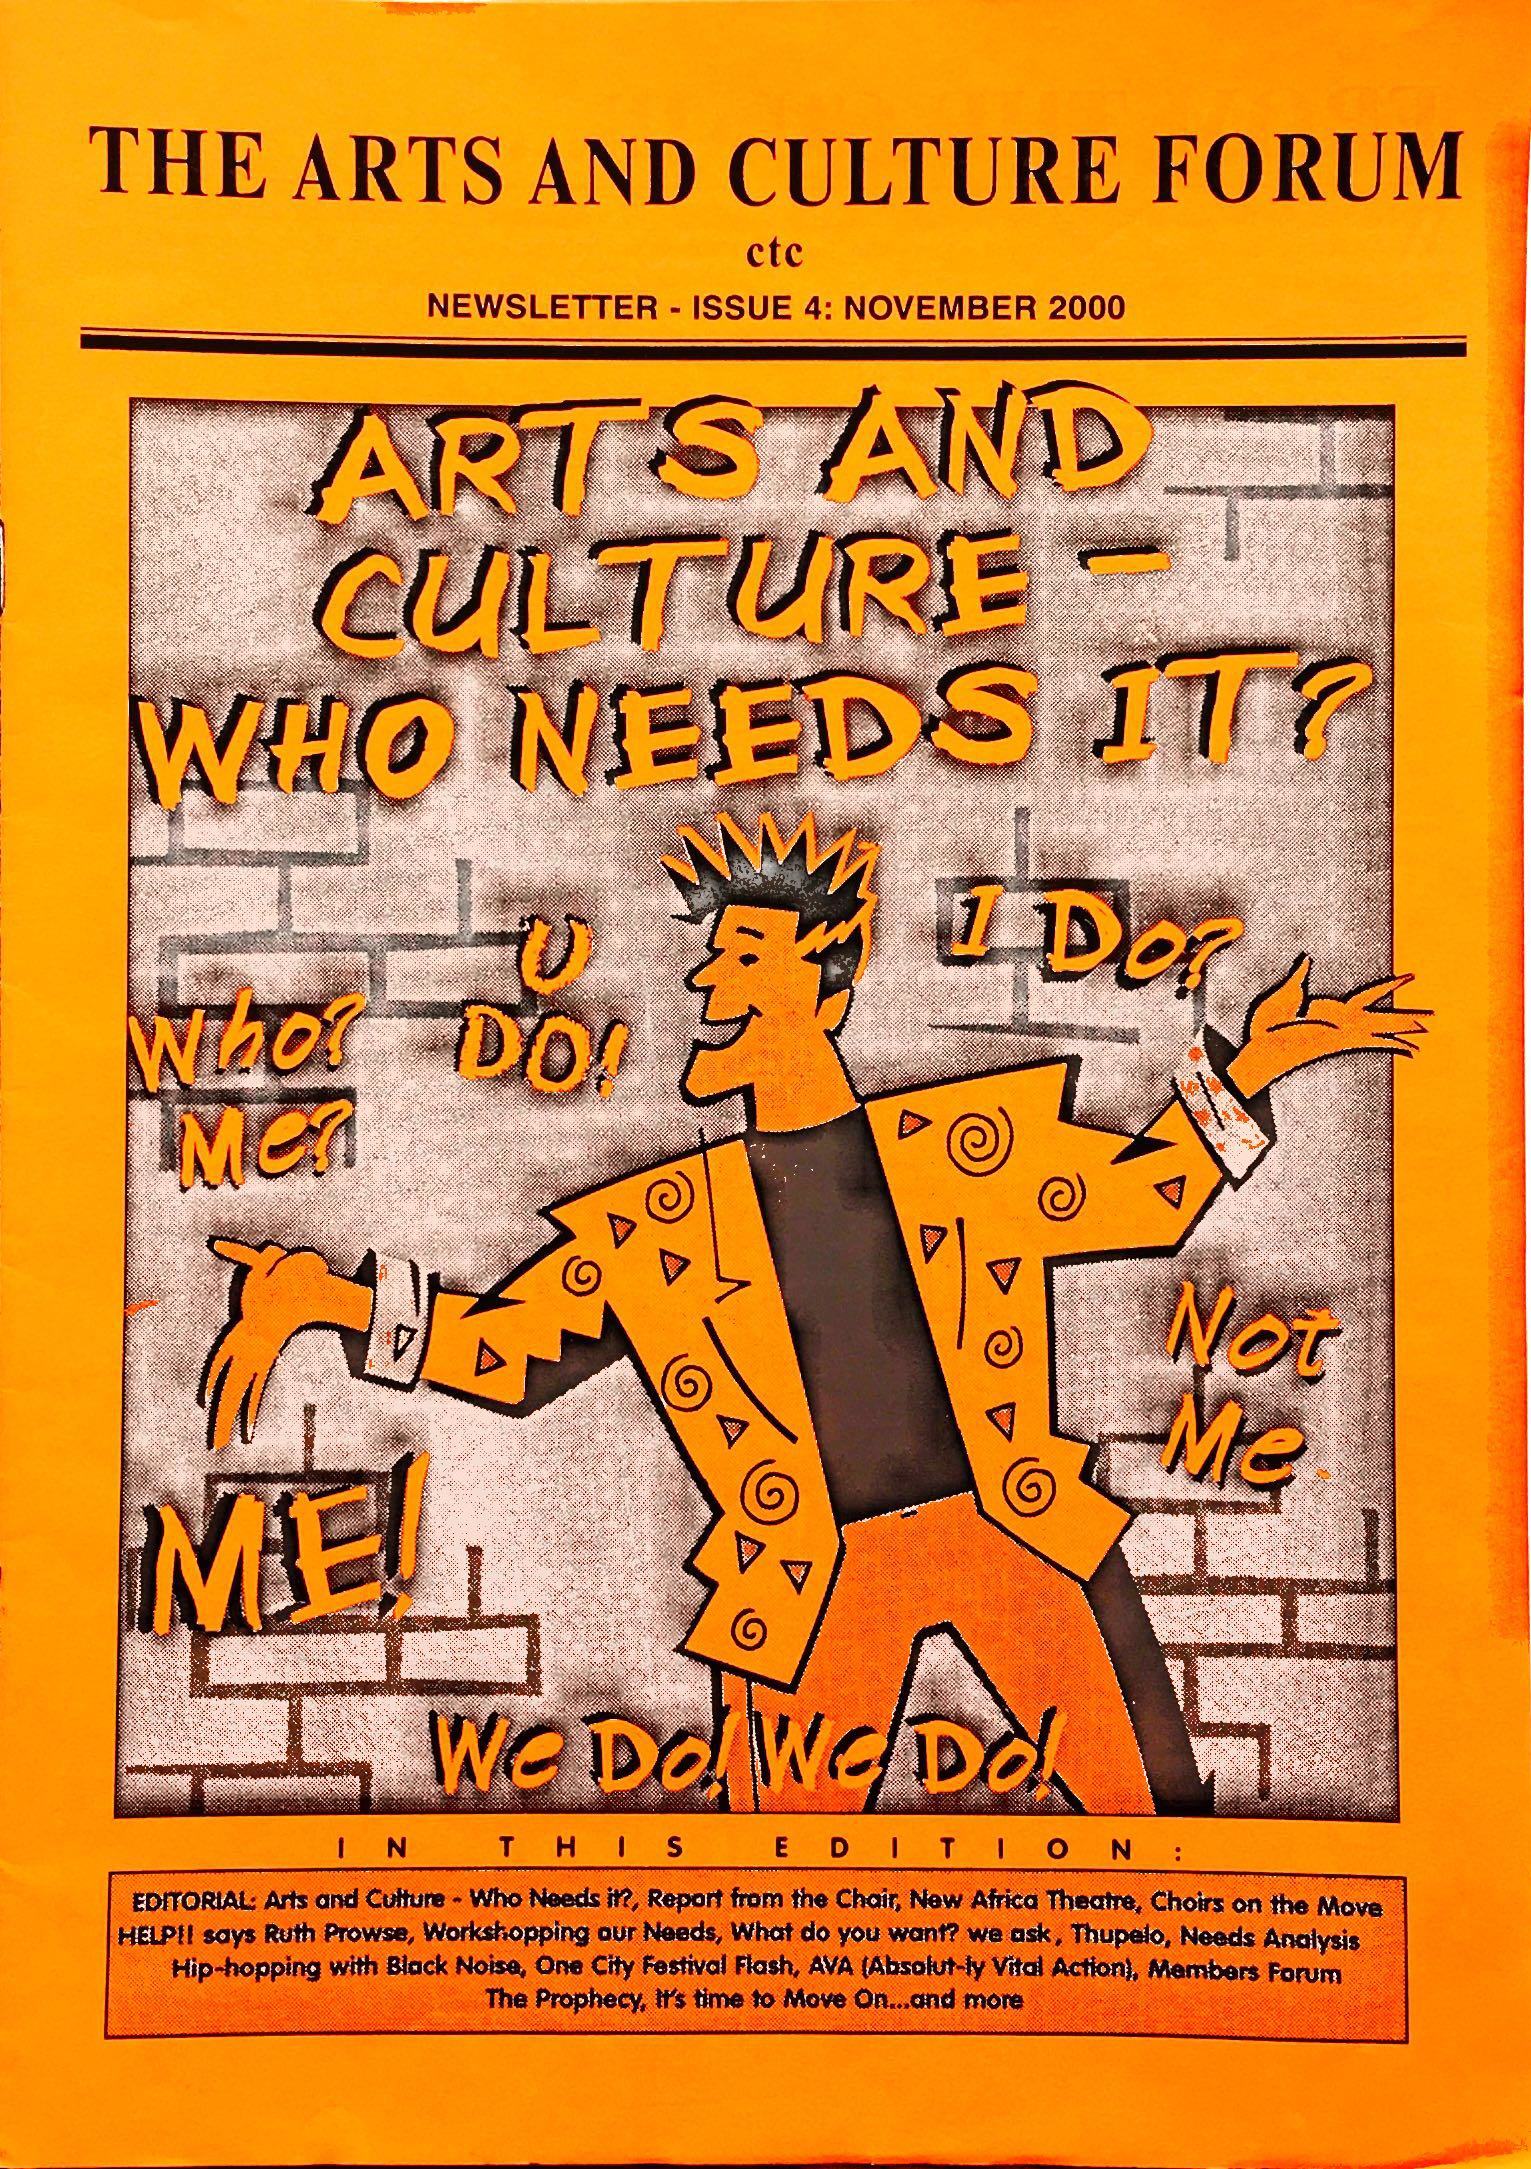 The Arts and Culture Forum Newsletter 2000, edited by Benita Munitz